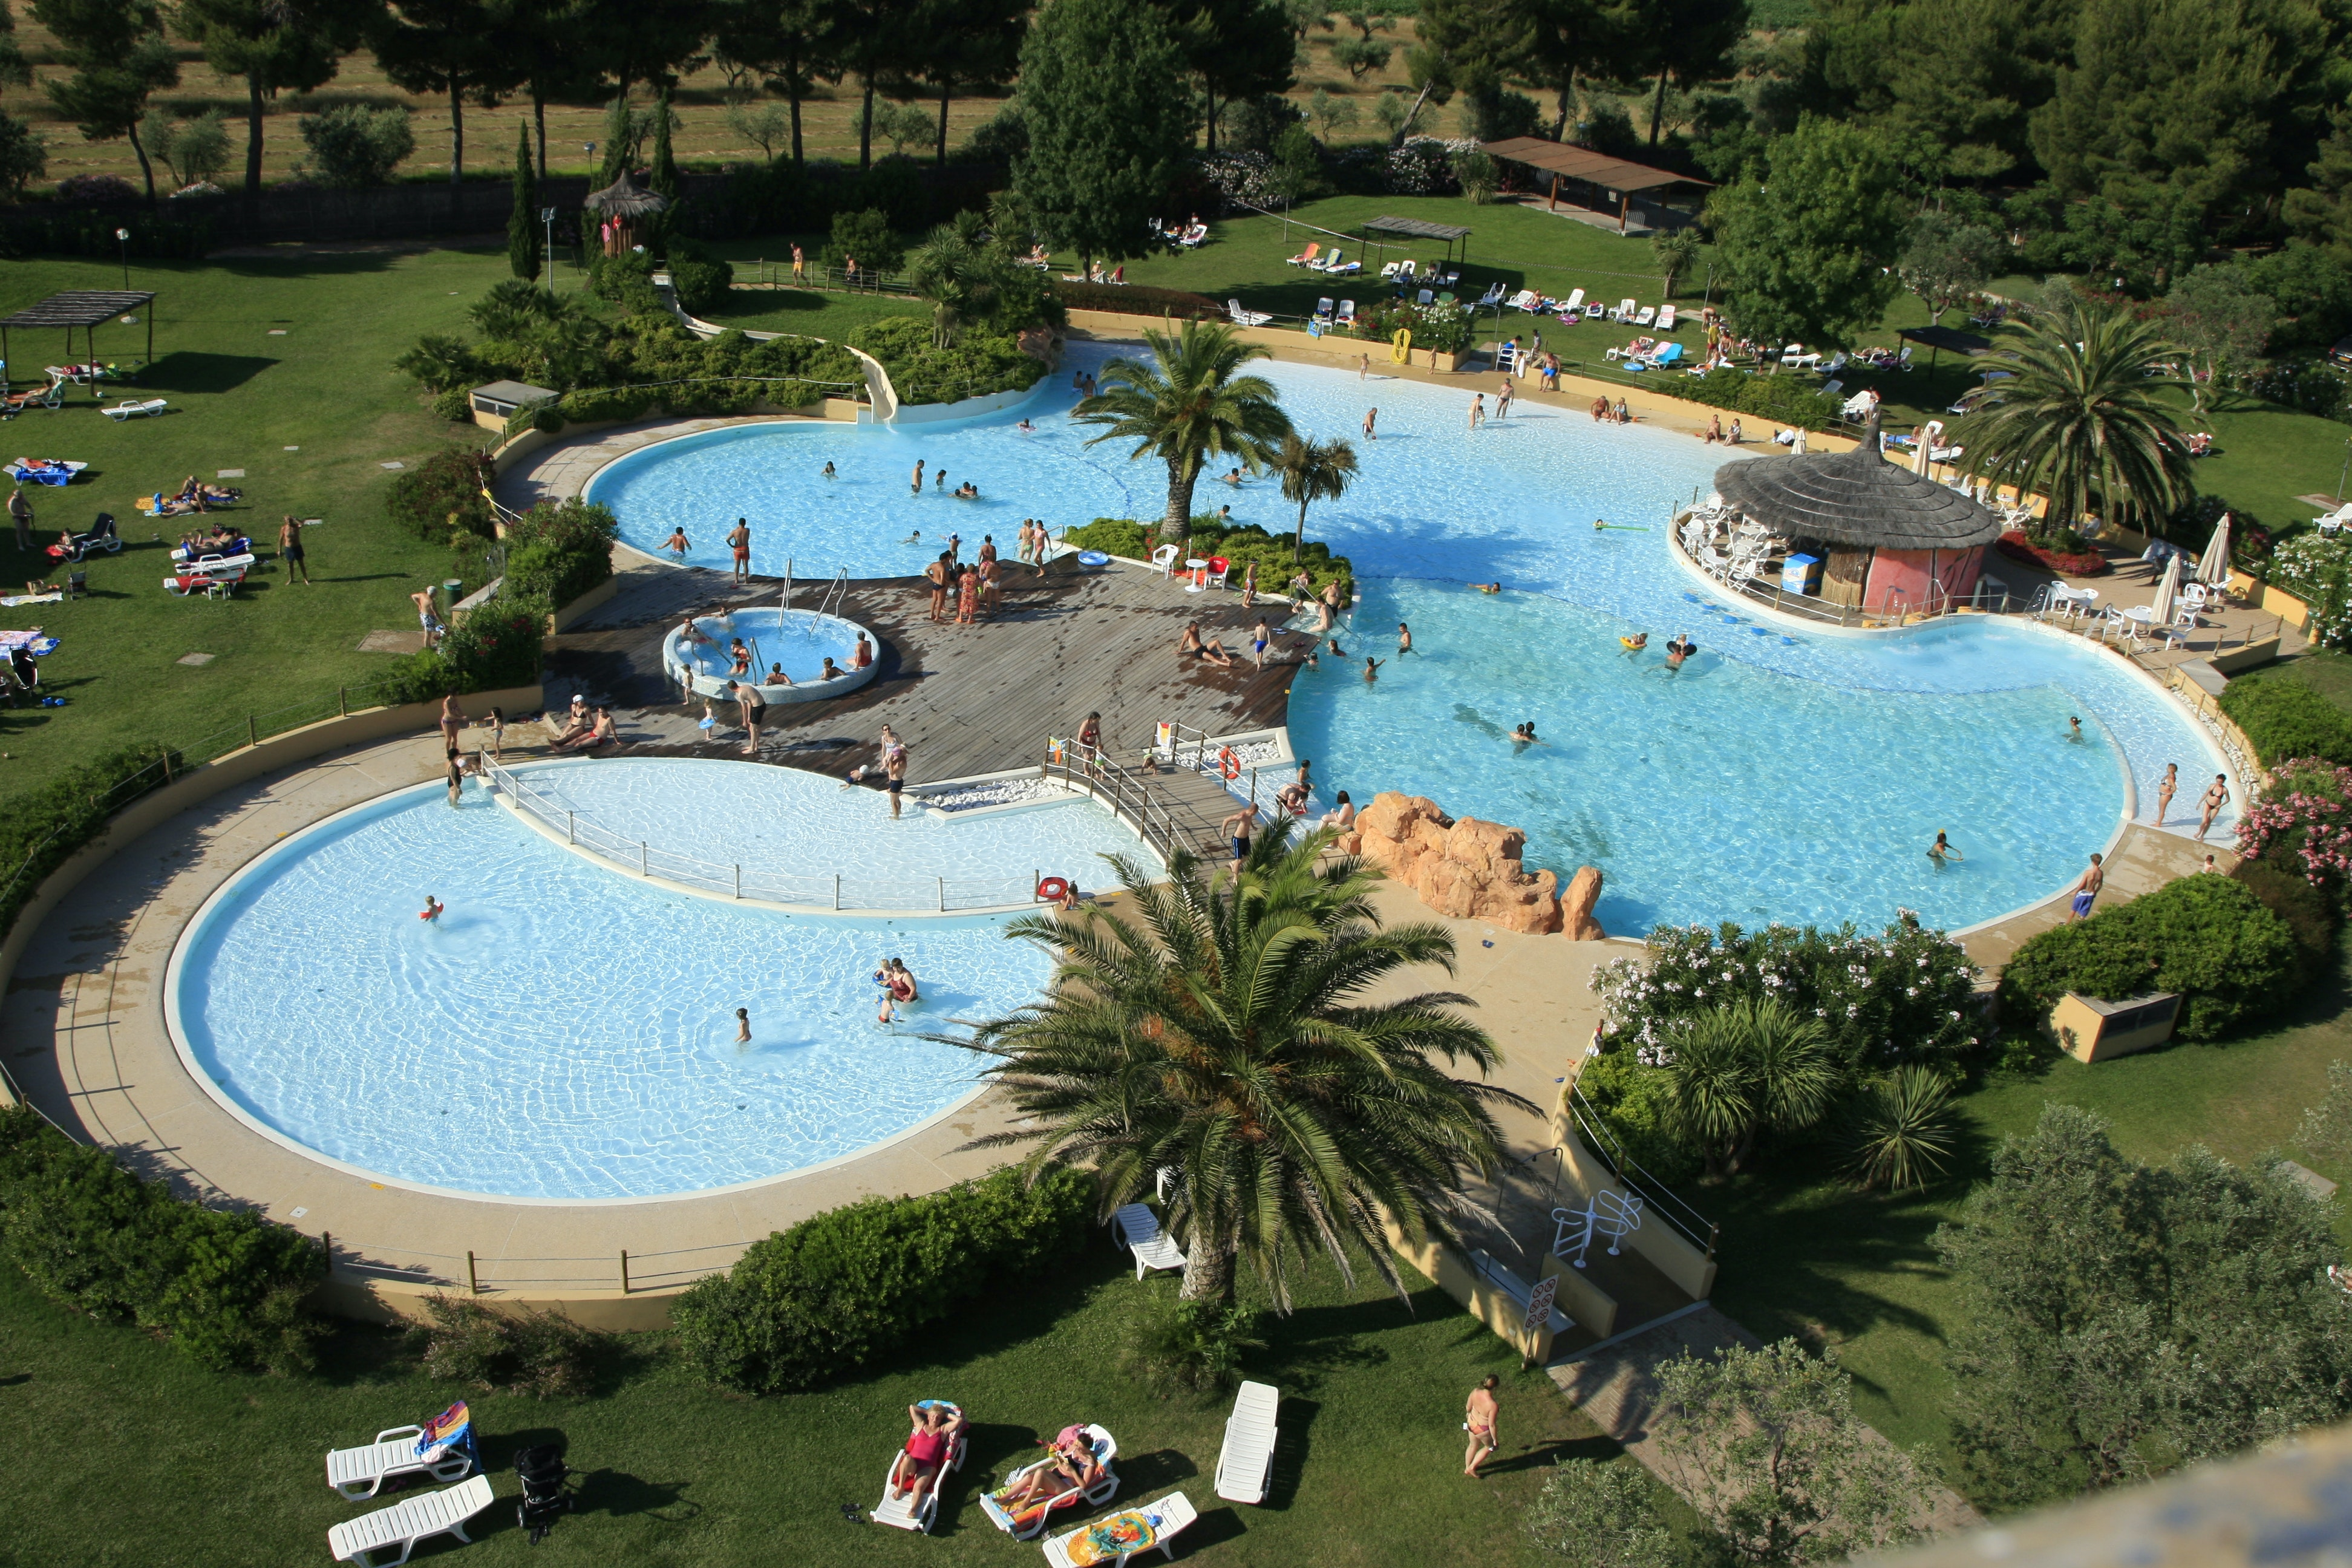 Zwembad camping Le Capanne